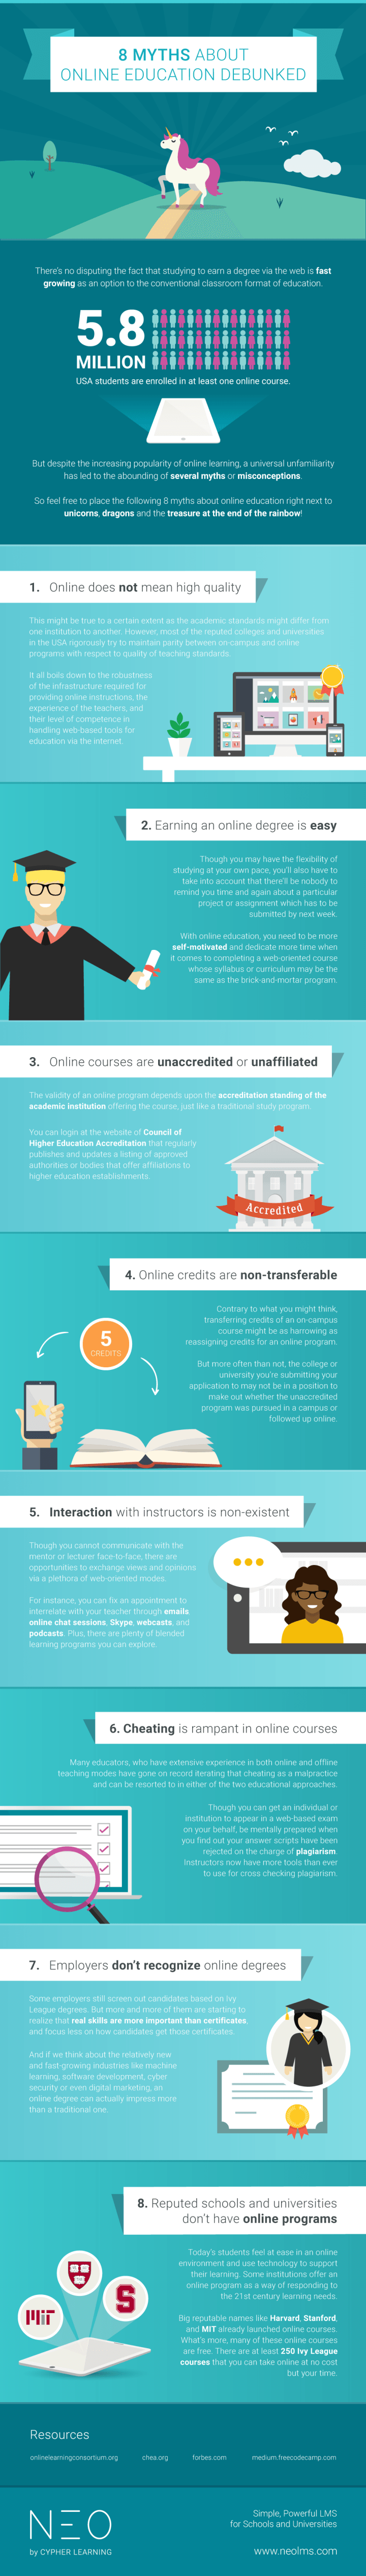 8 Myths about Online Education Debunked Infographic